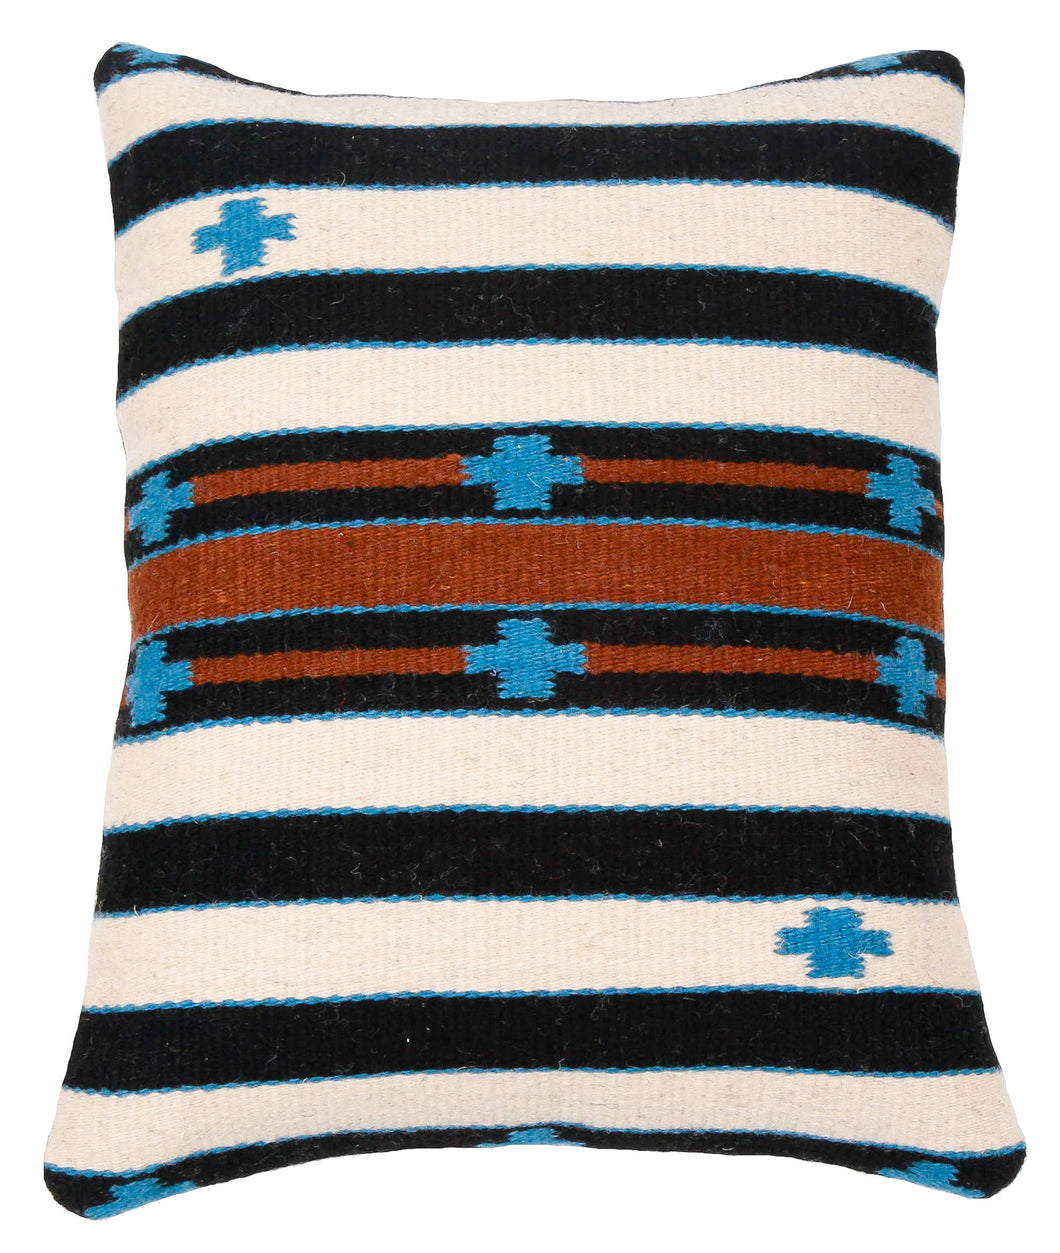 Handwoven Zapotec Pillow - Cloud Crosses Wool Oaxacan Textile